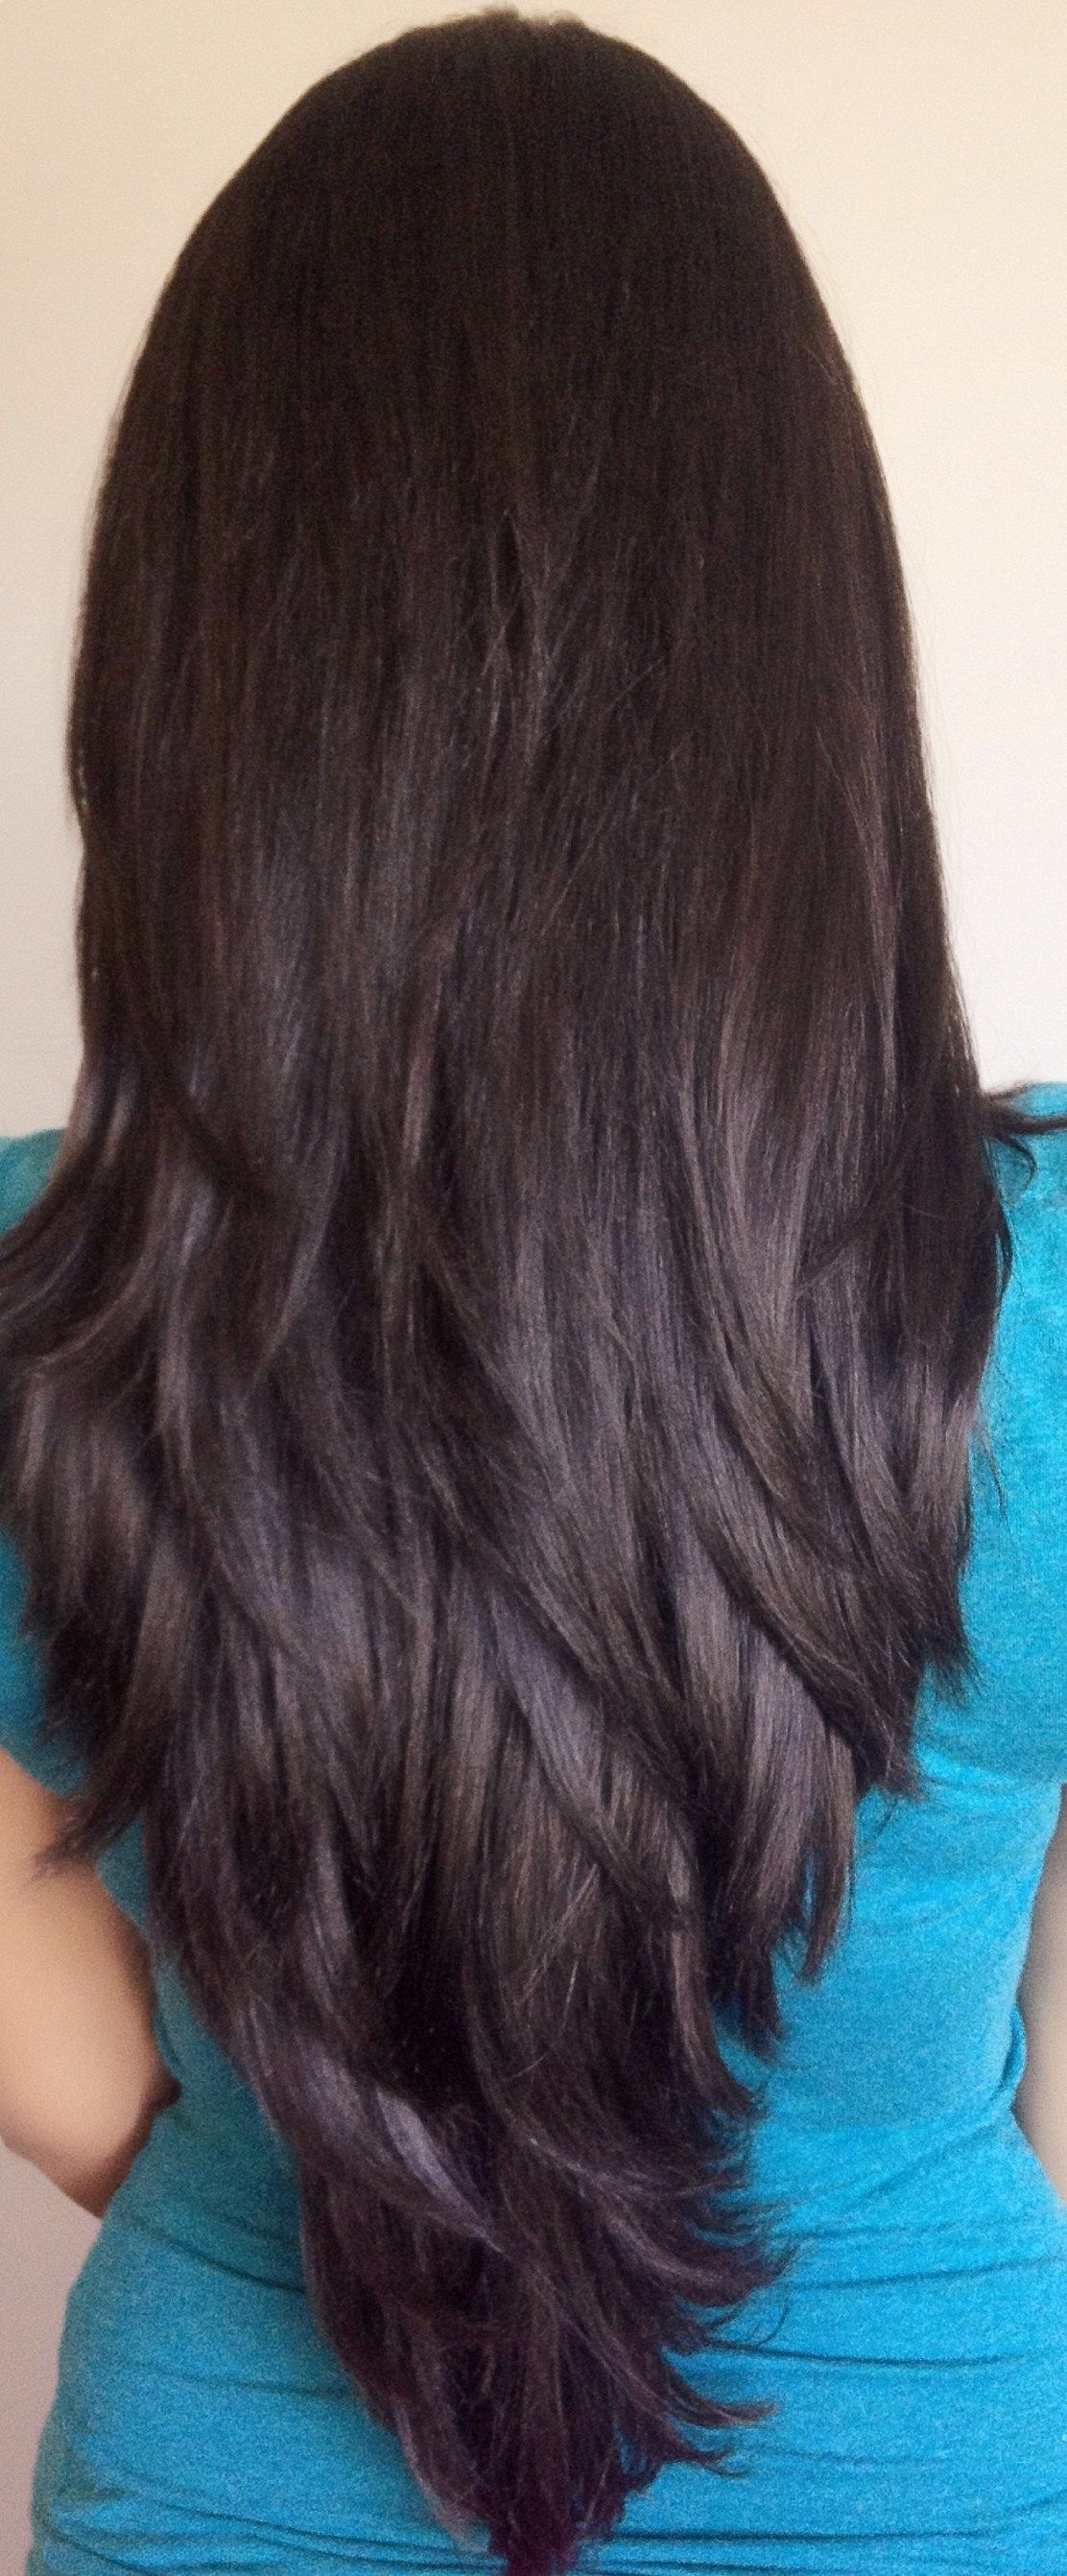 types of layered haircut   hairstyles ideas for me   gaya